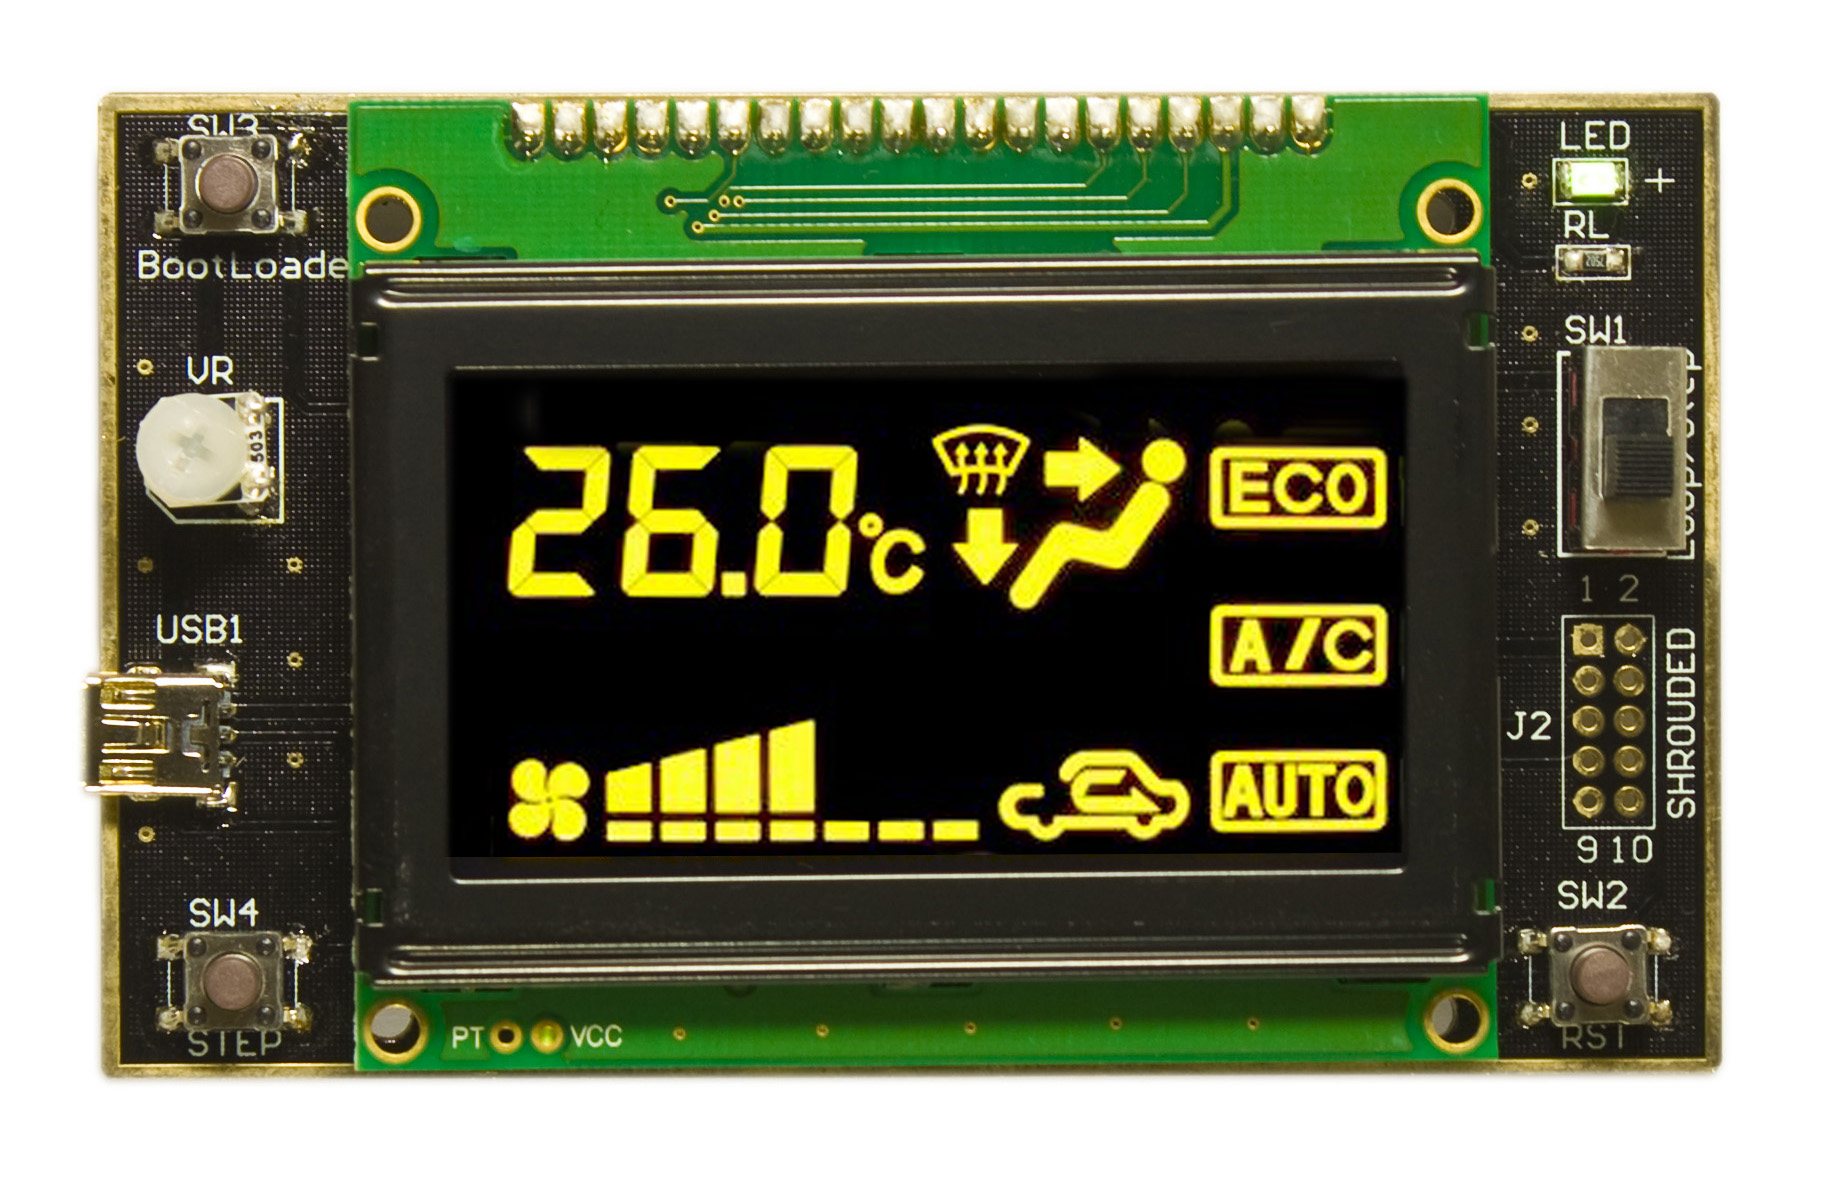 OLED Graphic Display